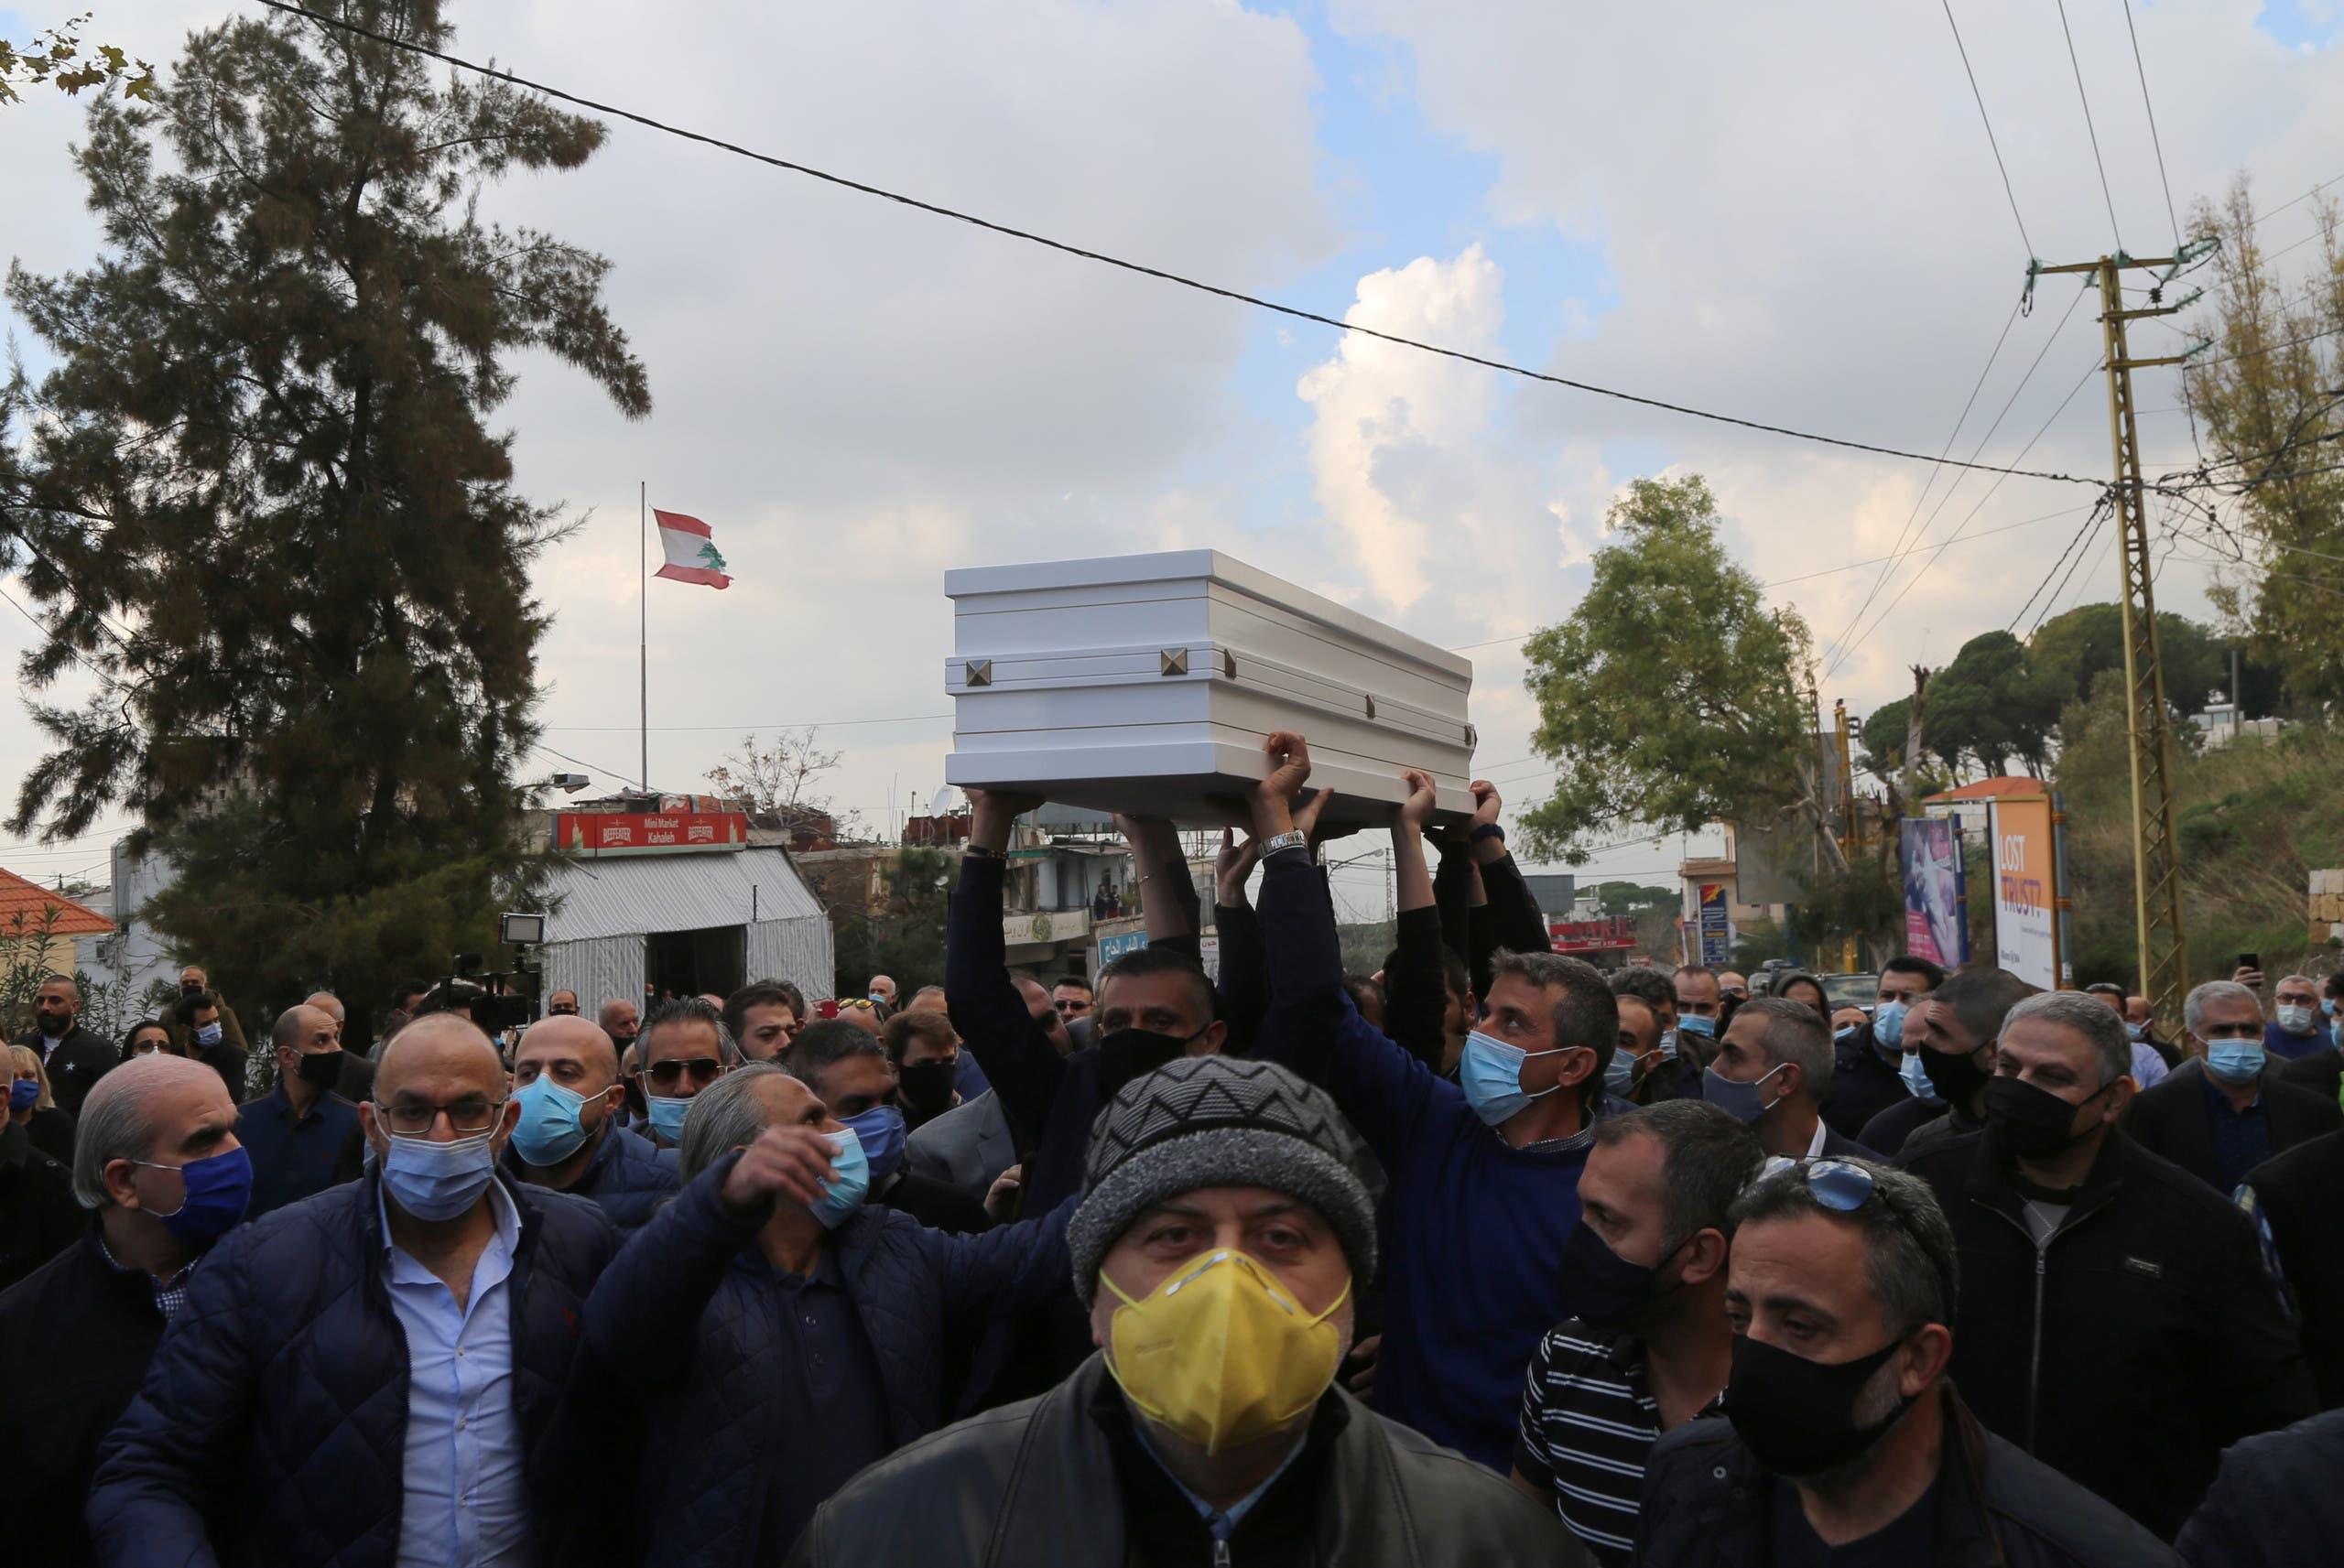 Men carry the coffin of Joe Bejjany, a 36-year-old telecoms employee and freelance photographer, during his funeral in the village of Kahaleh, Lebanon December 22, 2020. (Reuters)